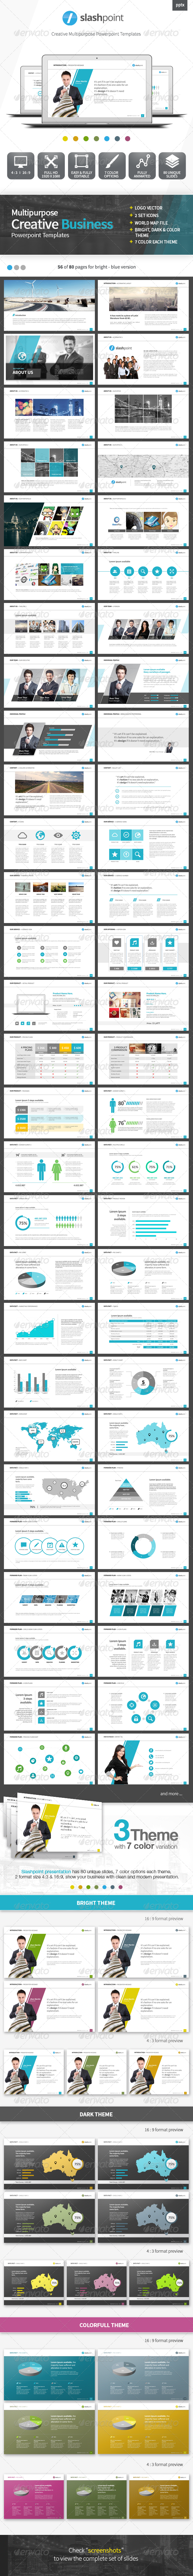 GraphicRiver Slashpoint Creative Business powerpoint template 7126824